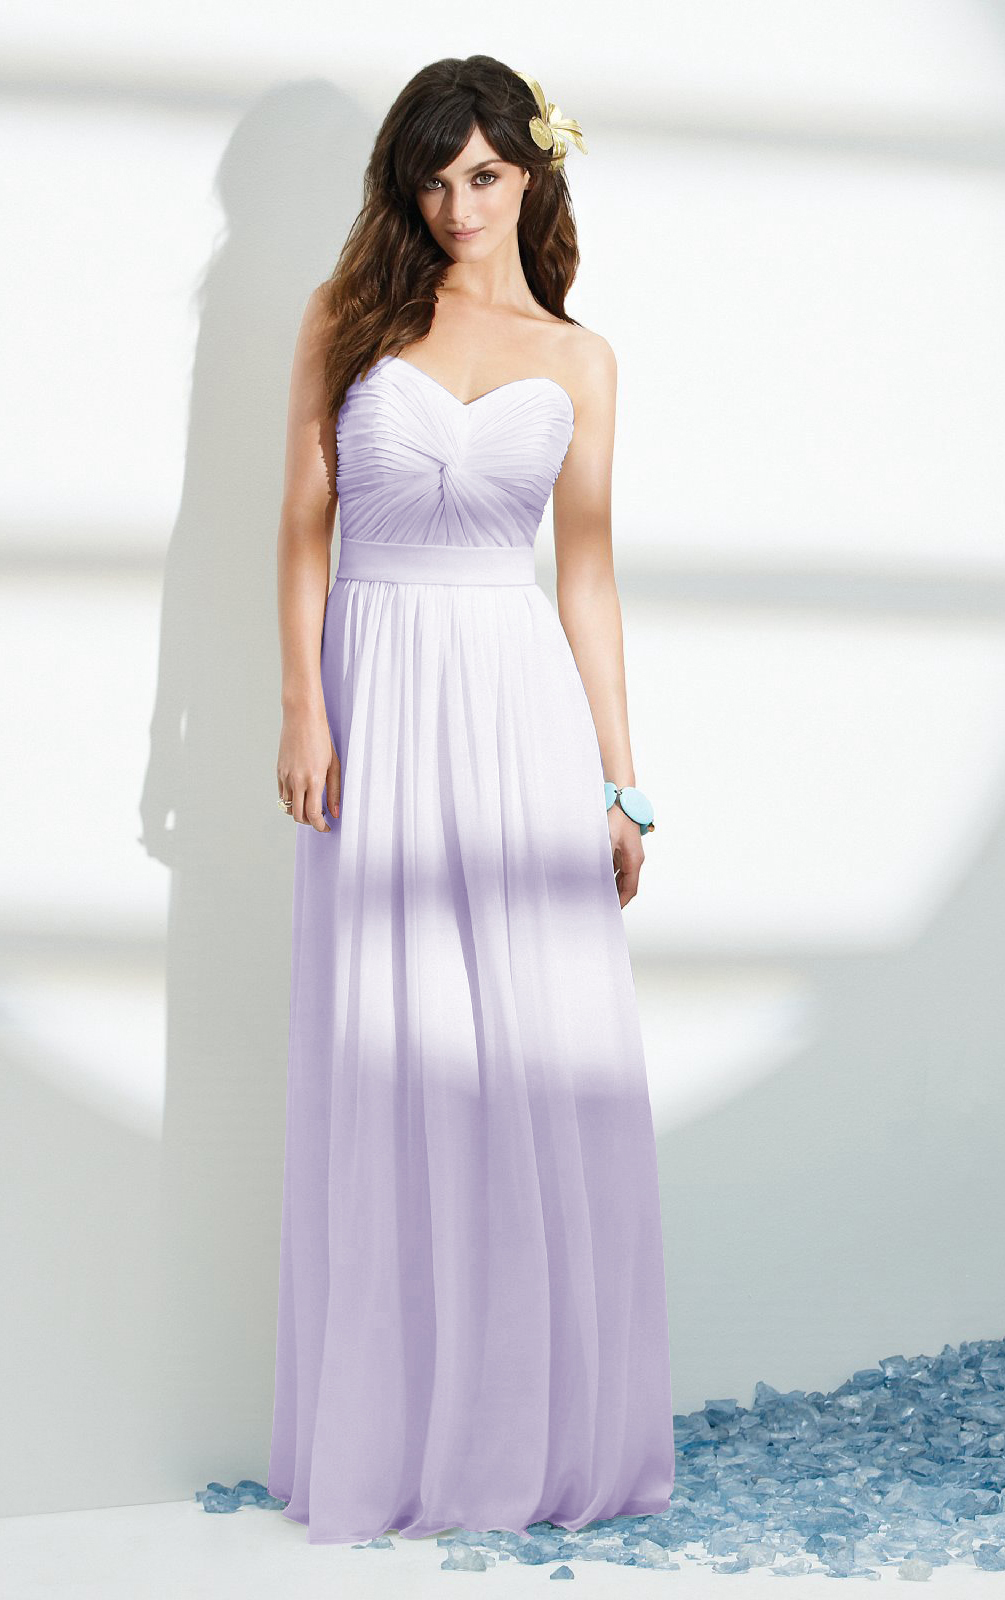 http://www.aislestyle.co.uk/aline-zipper-natural-sweetheart-chiffon-bridesmaid-dresses-p-4106.html